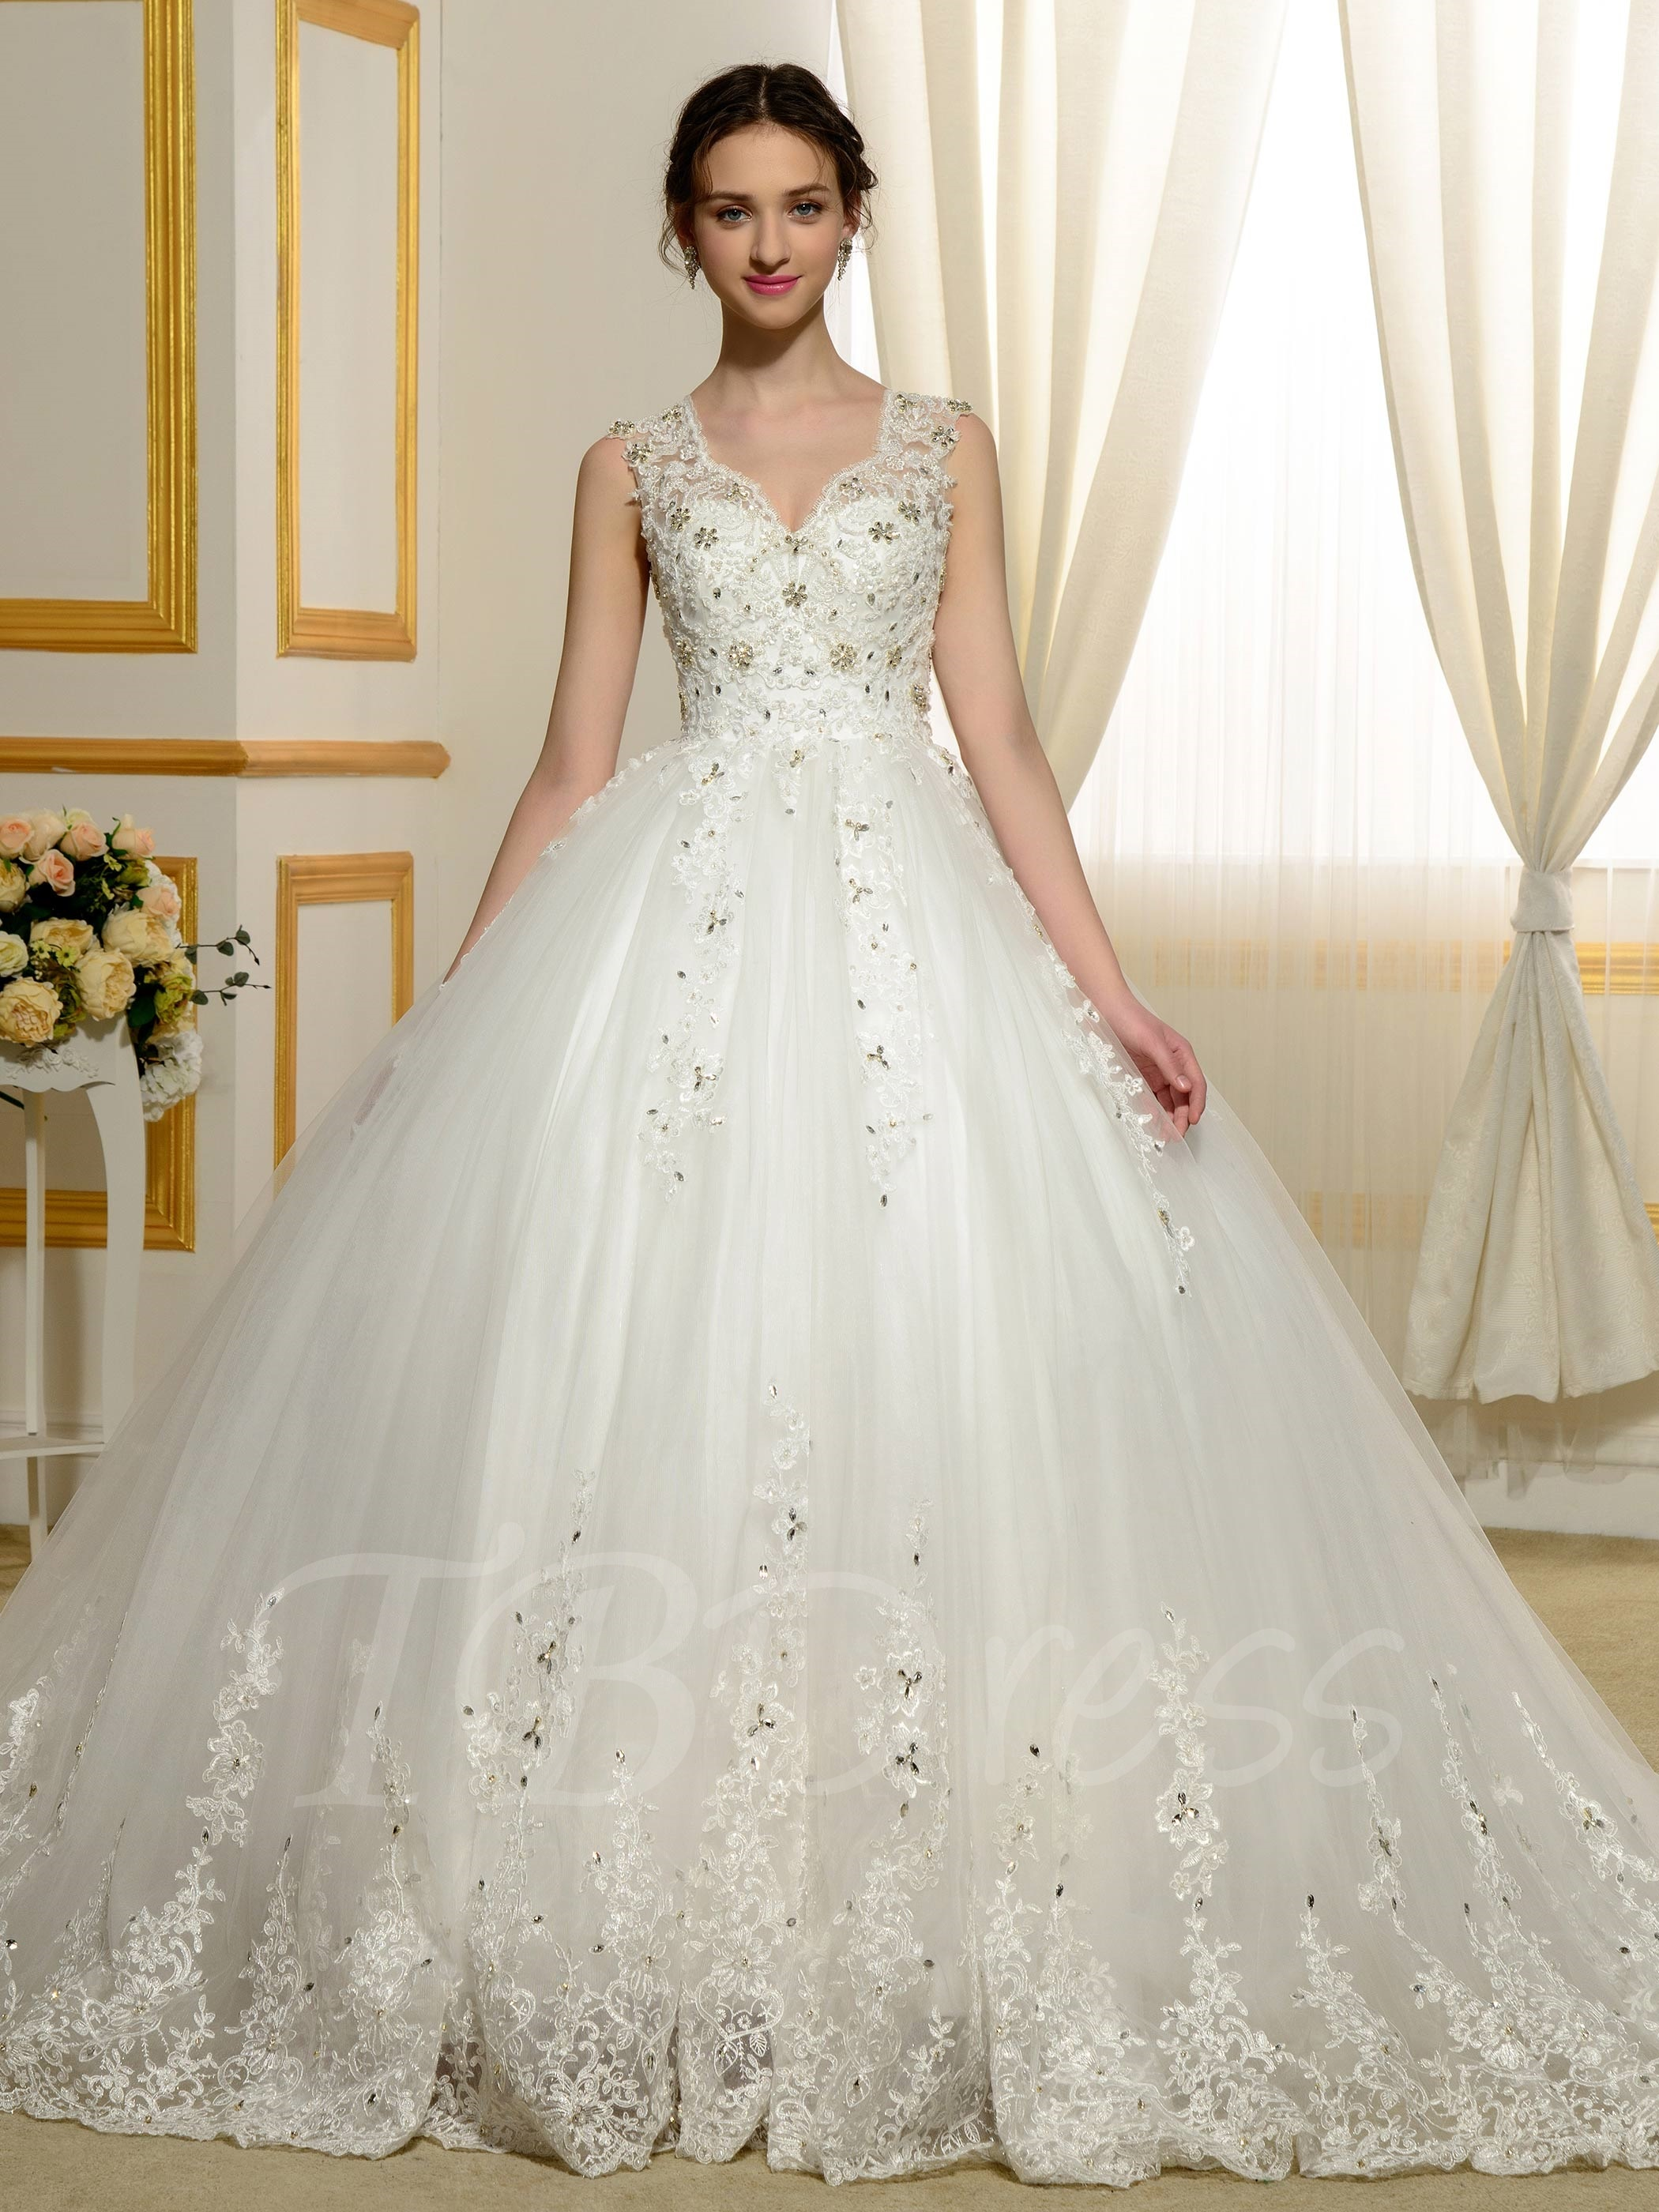 Ball Gown Wedding Dresses Advantages careyfashioncom